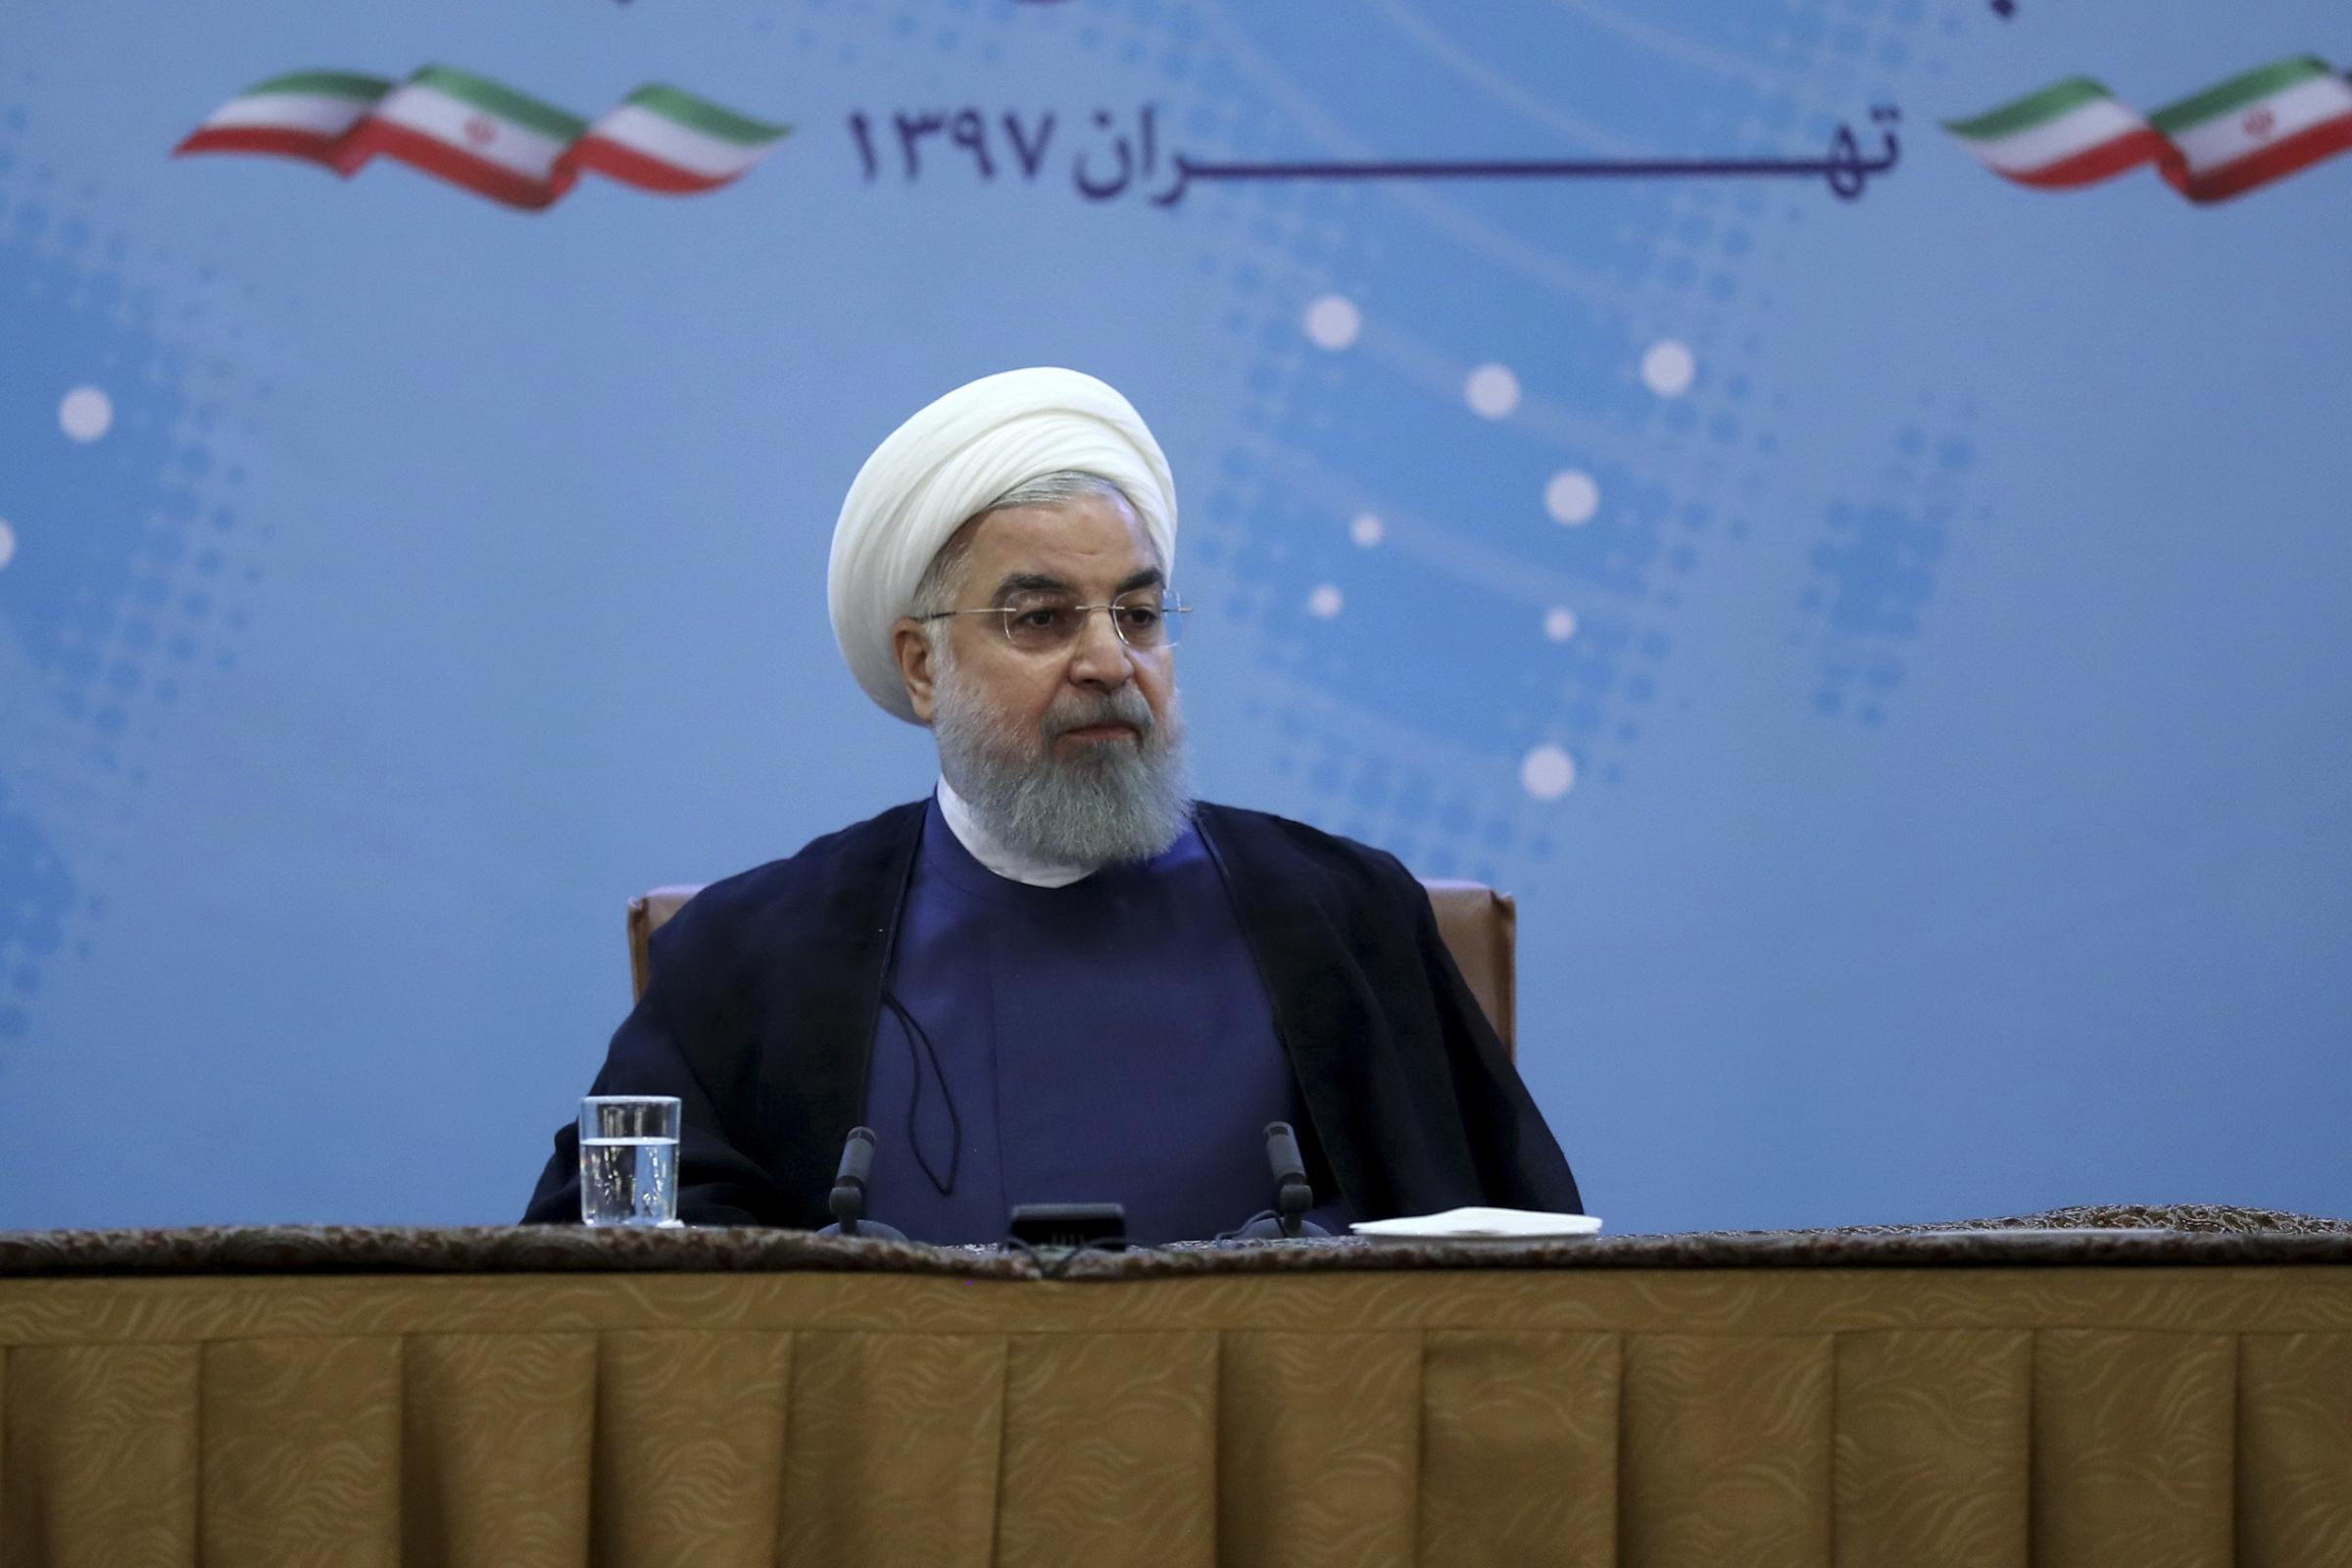 Rouhani says Trump's 'empty threats' not worth a response